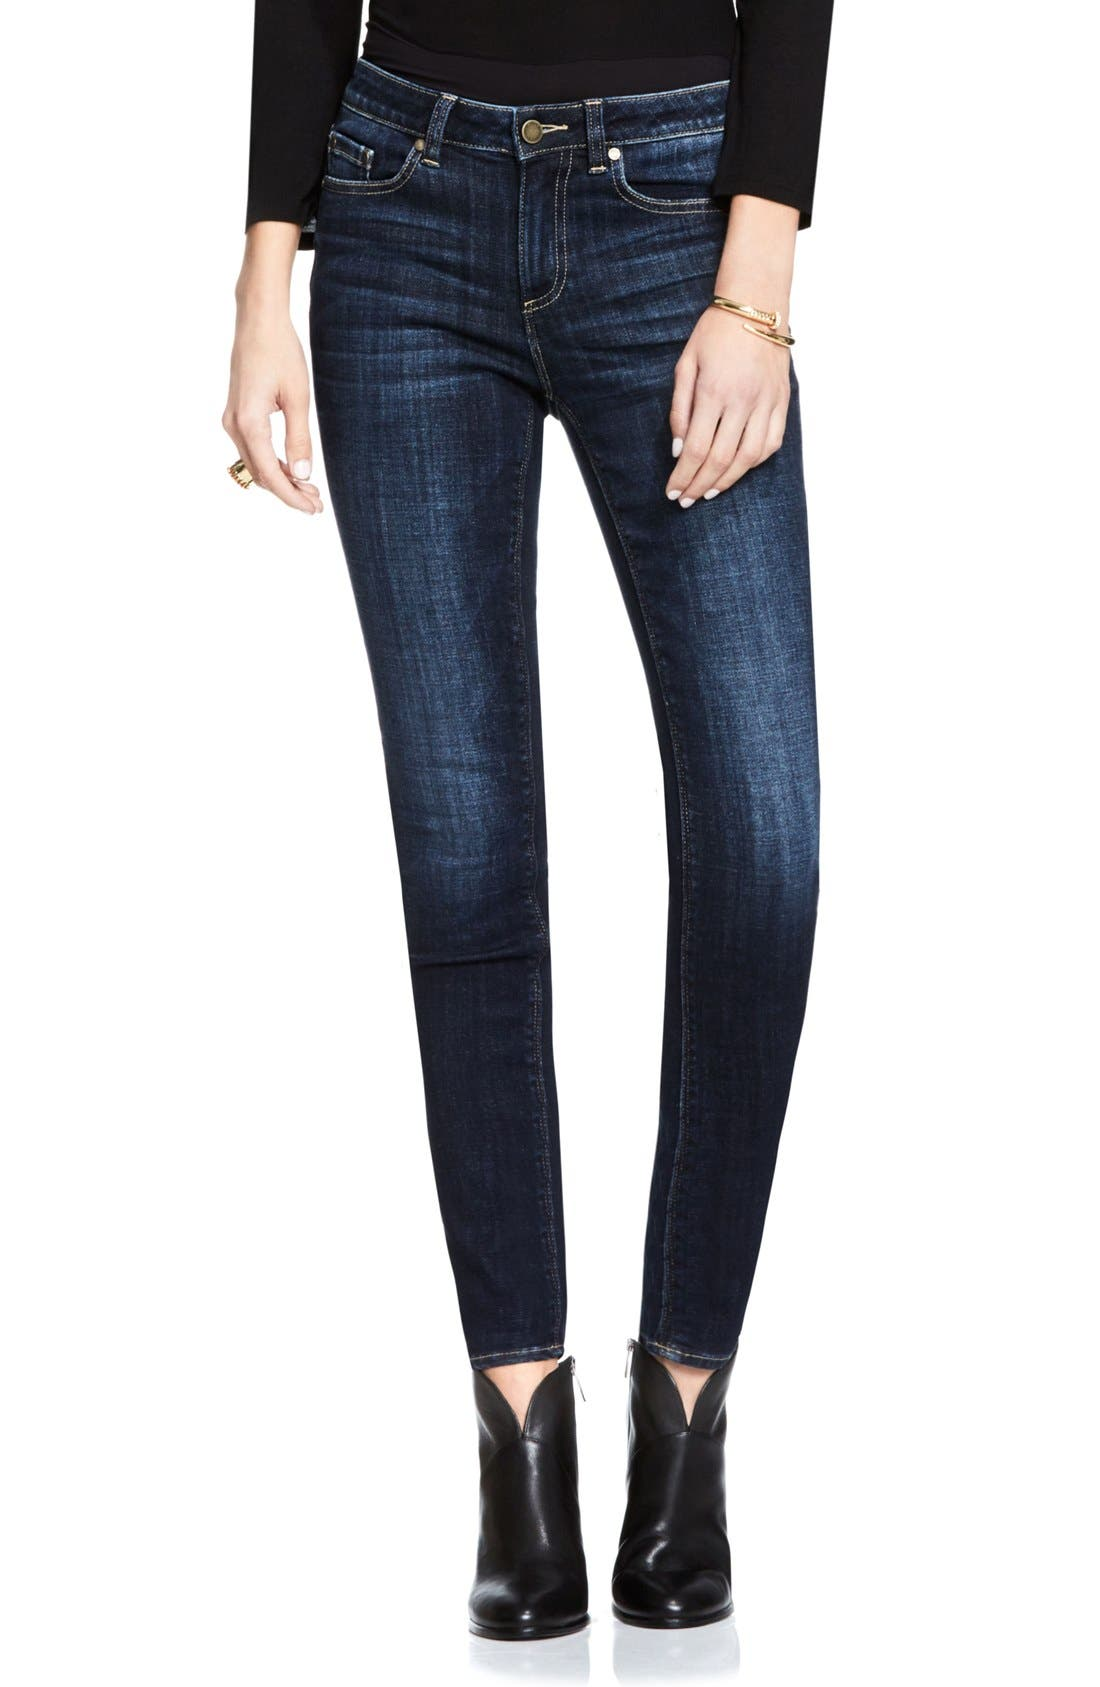 Main Image - Vince Camuto Stretch Skinny Jeans (Regular & Petite)